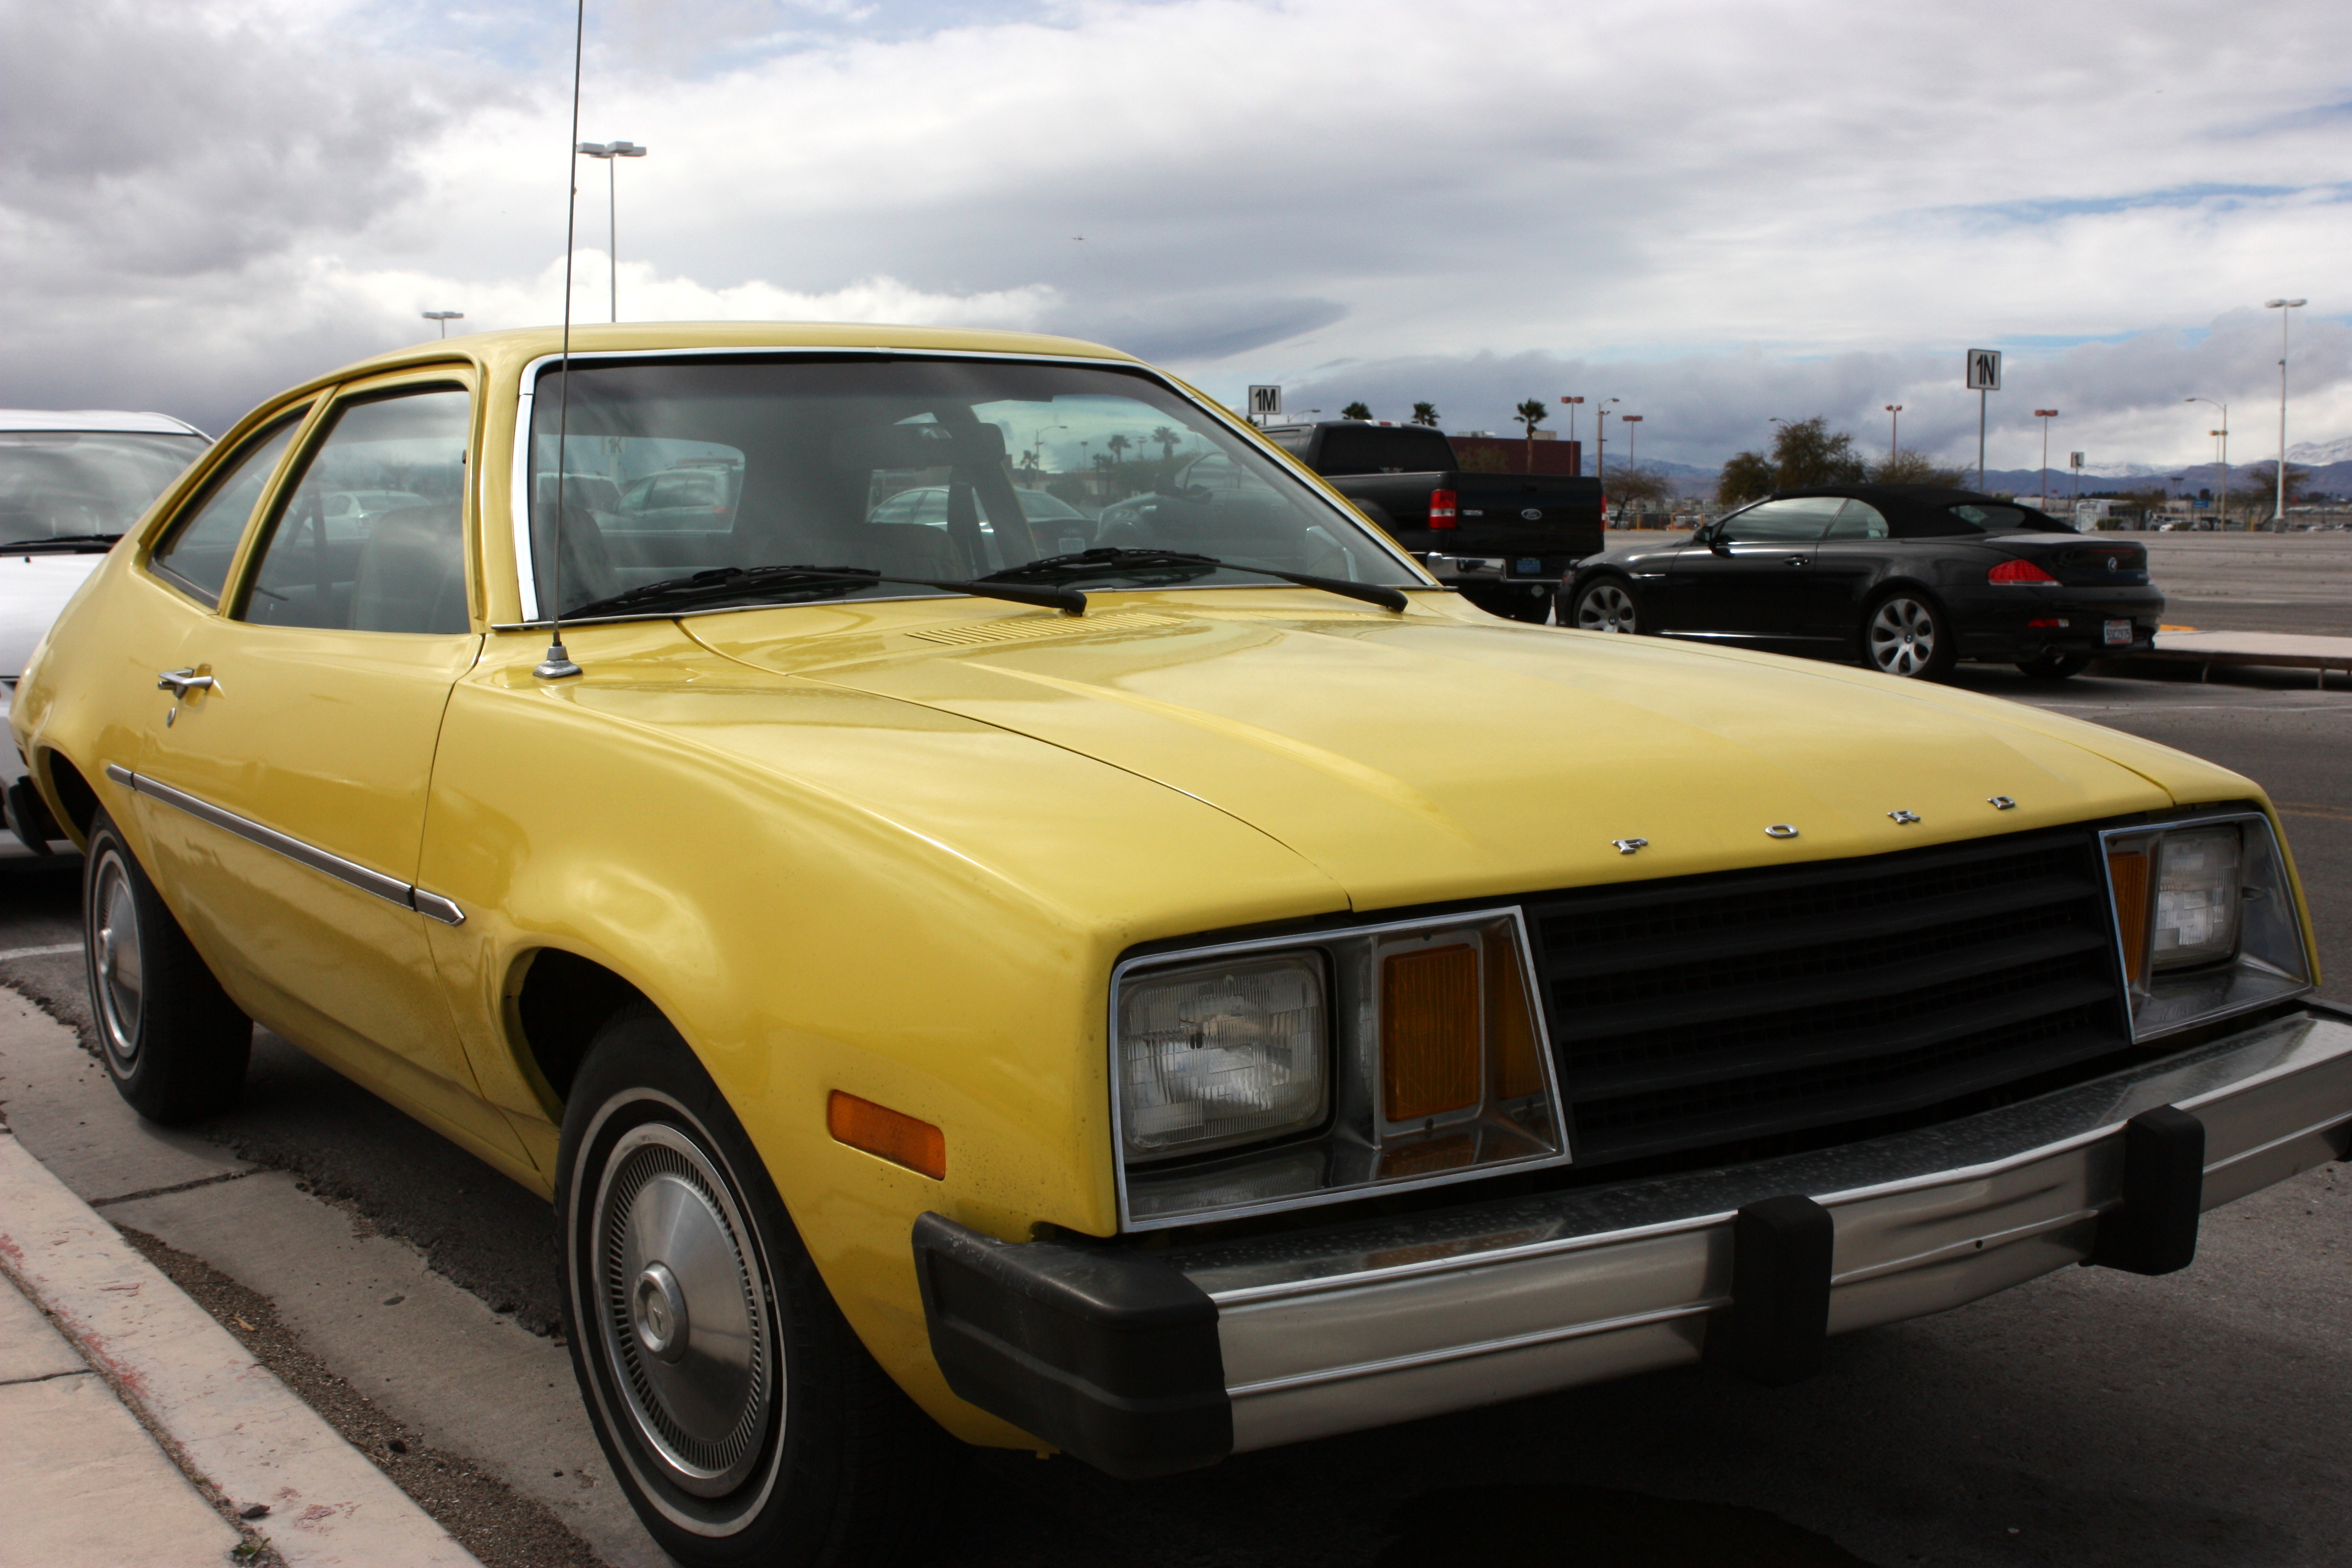 1979 ford fiesta with File Classic Yellow Ford Pinto on Watch as well Aire Acondicionado further Even Though Ford Fiesta Rs Wrc Have further Ford Transit Connect additionally Mercedes G Wagen 4x4 Squared Gets Tuned Brabus.